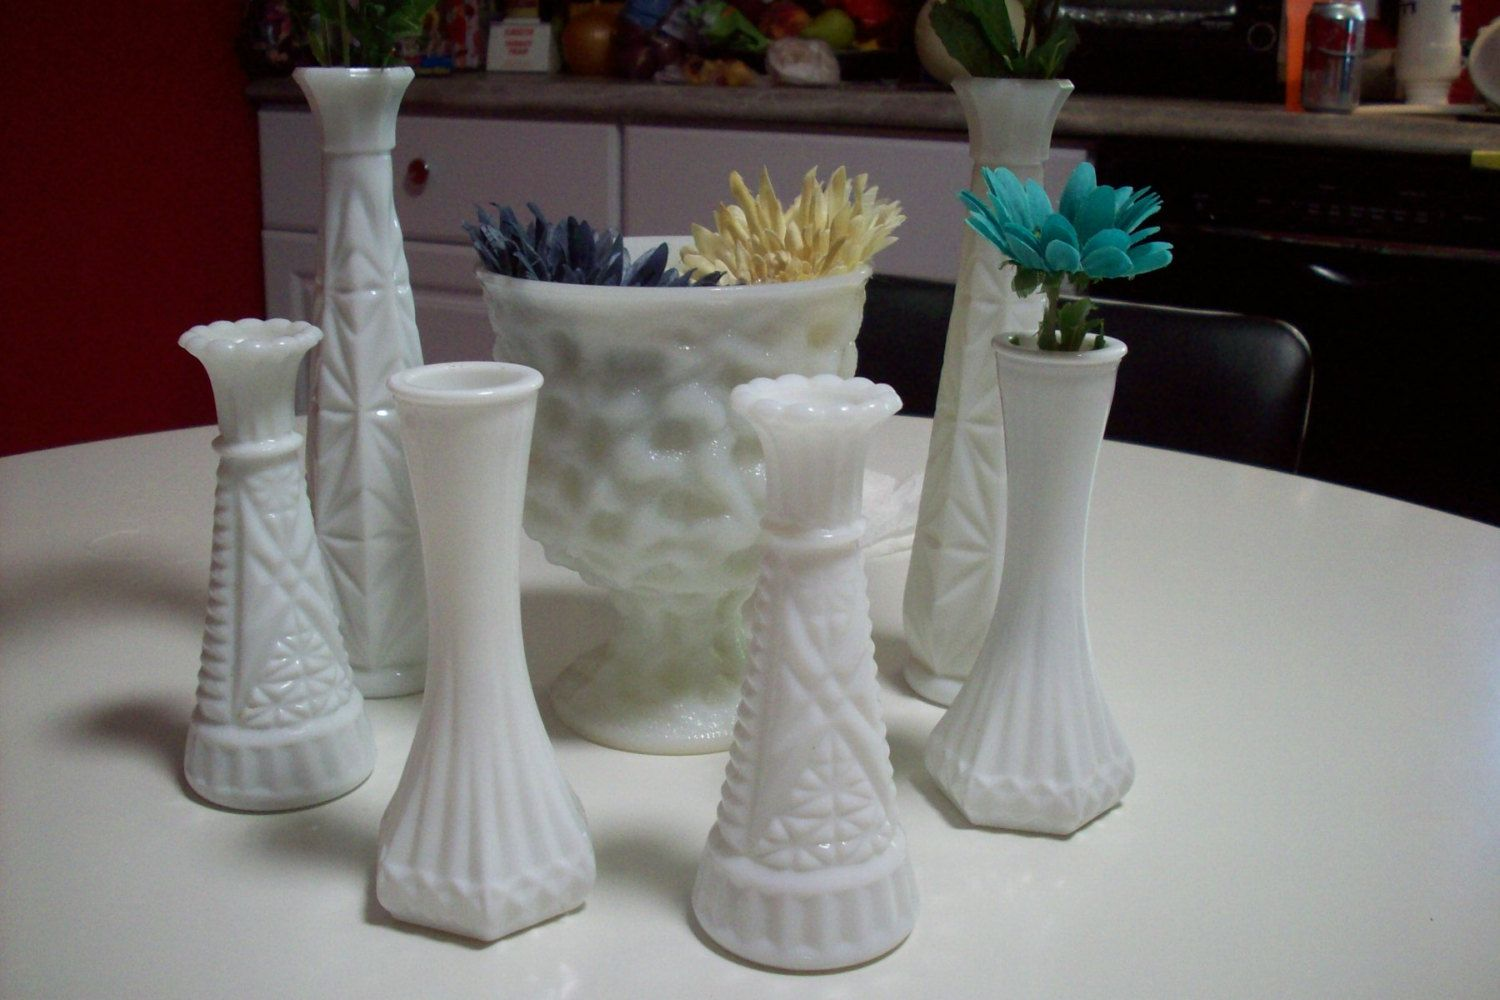 White milk glass vases vintage wedding centerpiece vases hoosier white milk glass vases vintage wedding centerpiece vases hoosier glass eoody compote reviewsmspy